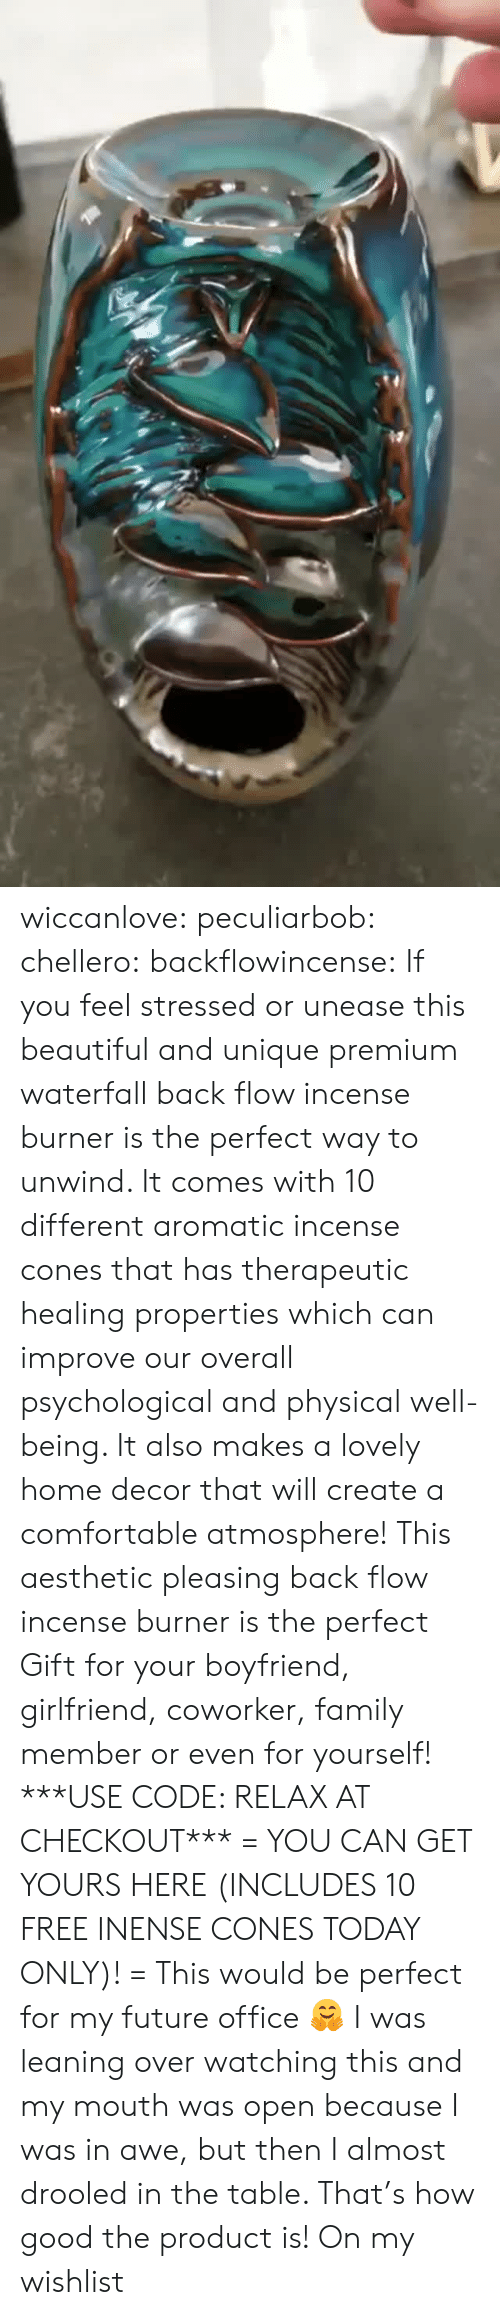 waterfall: wiccanlove:  peculiarbob: chellero:   backflowincense:  If you feel stressed or unease this beautiful and unique premium waterfall back flow incense burner is the perfect way to unwind. It comes with 10 different aromatic incense cones that has therapeutic healing properties which can improve our overall psychological and physical well-being. It also makes a lovely home decor that will create a comfortable atmosphere! This aesthetic pleasing back flow incense burner is the perfect Gift for your boyfriend, girlfriend, coworker, family member or even for yourself! ***USE CODE: RELAX AT CHECKOUT*** = YOU CAN GET YOURS HERE (INCLUDES 10 FREE INENSE CONES TODAY ONLY)! =   This would be perfect for my future office 🤗   I was leaning over watching this and my mouth was open because I was in awe, but then I almost drooled in the table. That's how good the product is!   On my wishlist